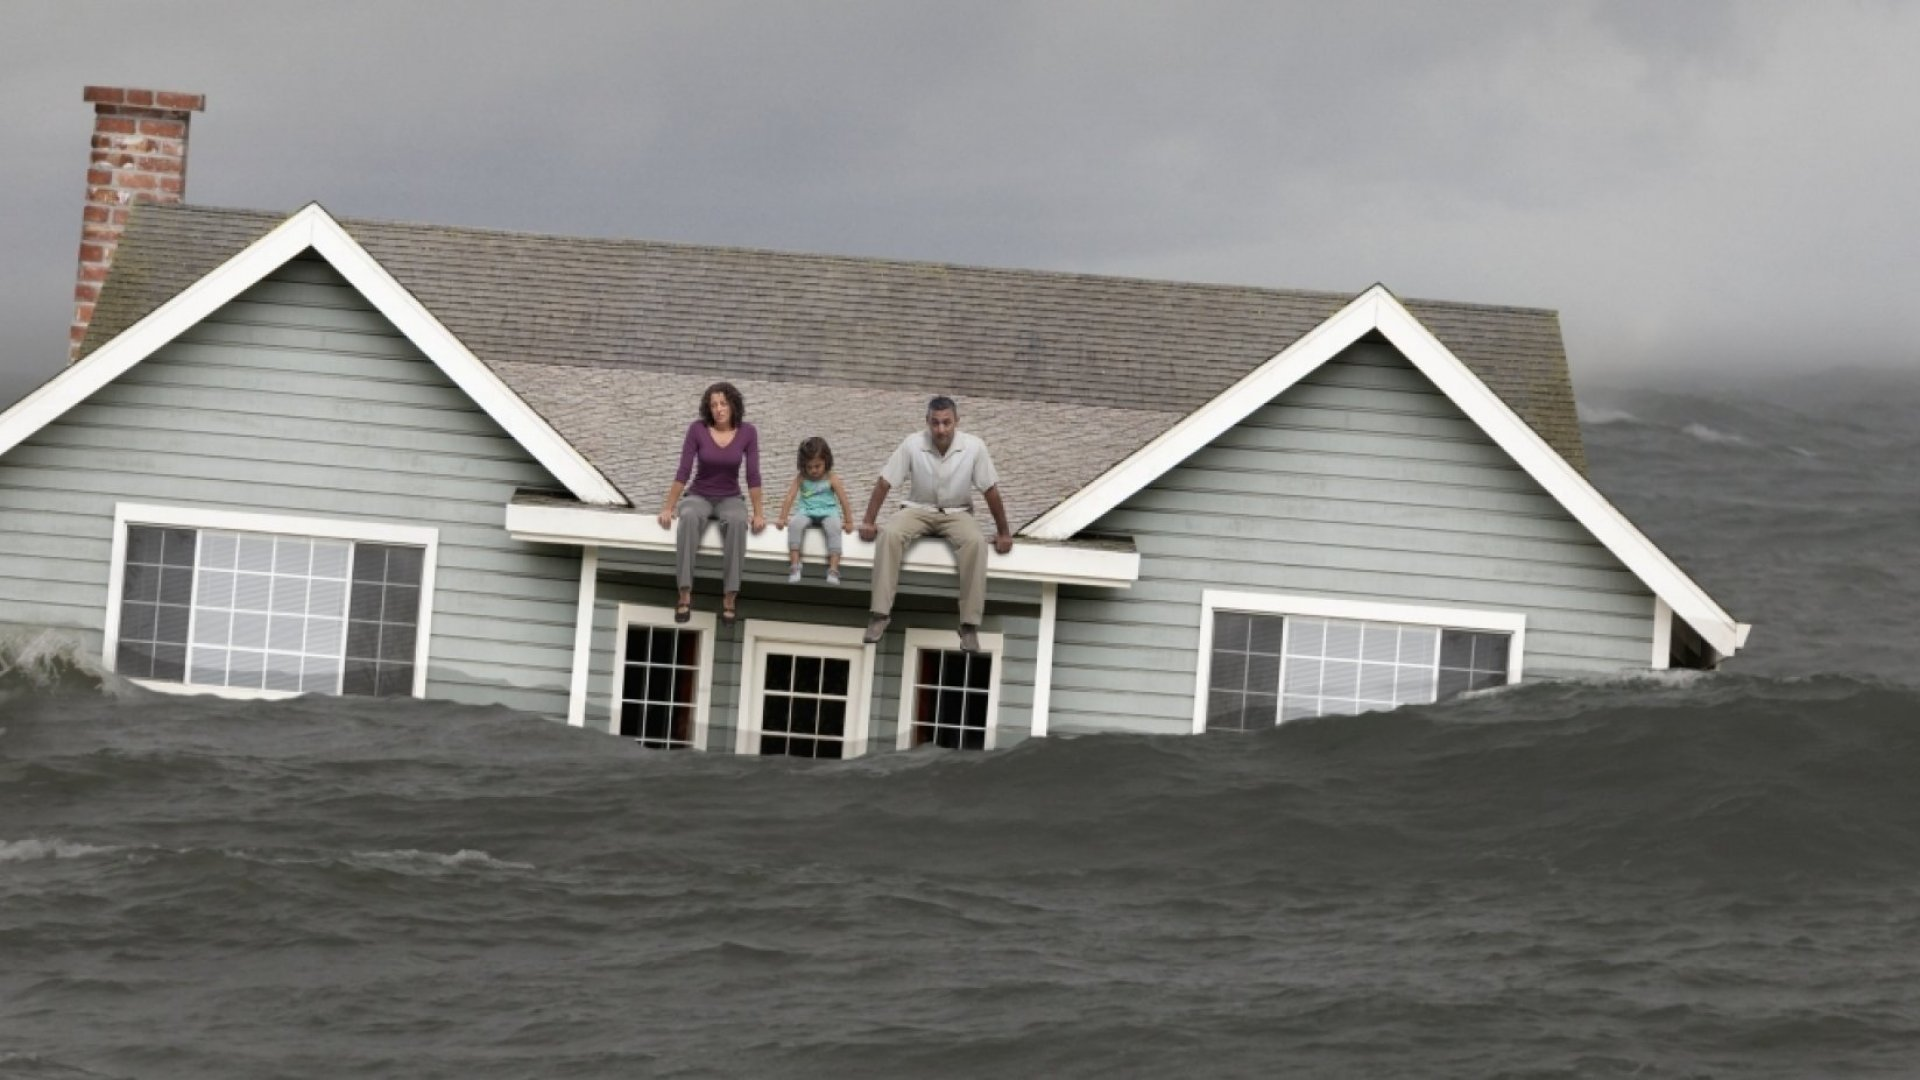 Your Business has Been Damaged or Destroyed by a Natural Disaster, What now?